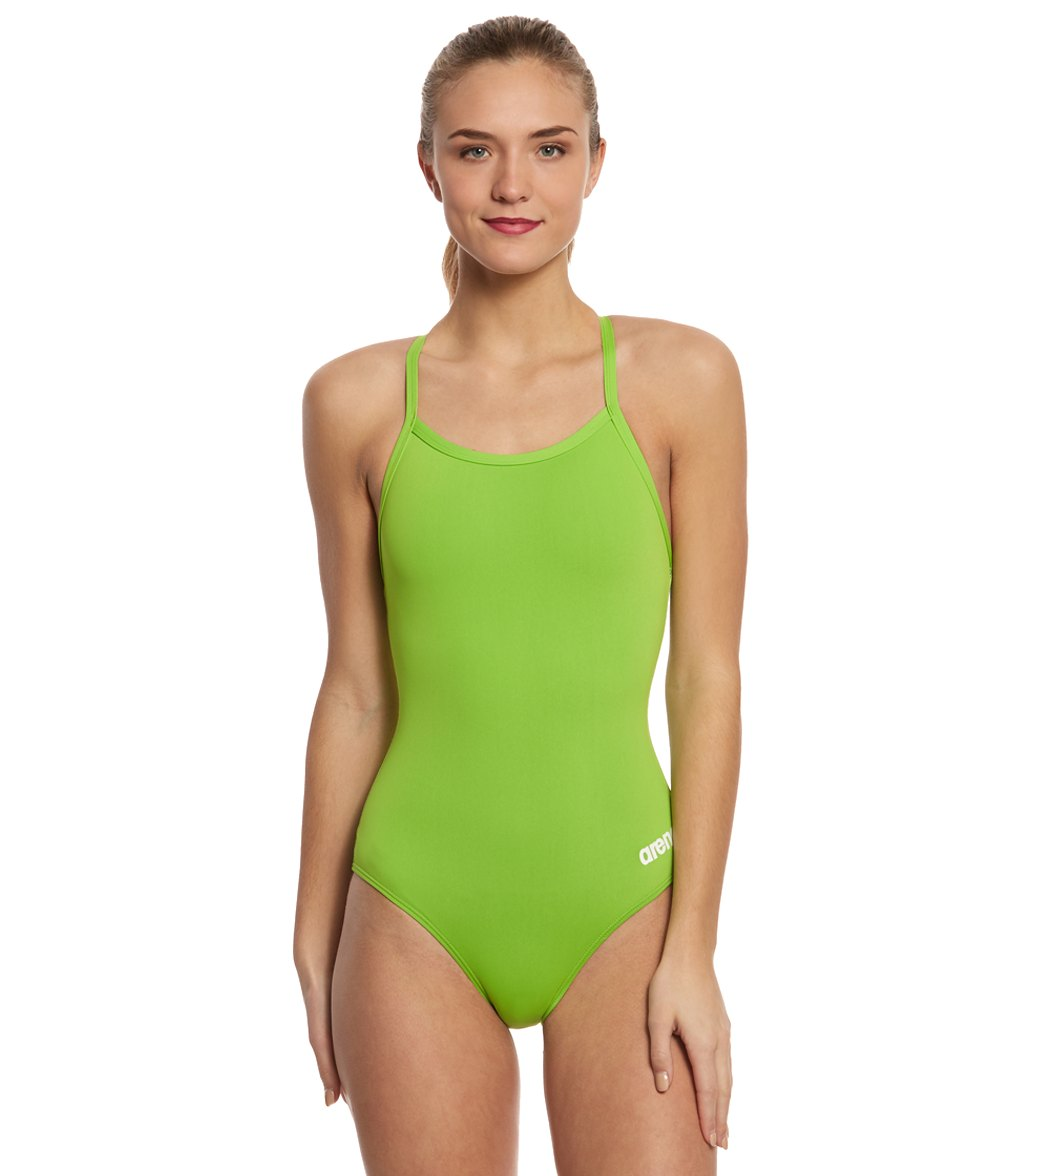 d9aa36290e481 Arena Master MaxLife Sporty Thin Strap Racer Back One Piece Swimsuit at  SwimOutlet.com - Free Shipping